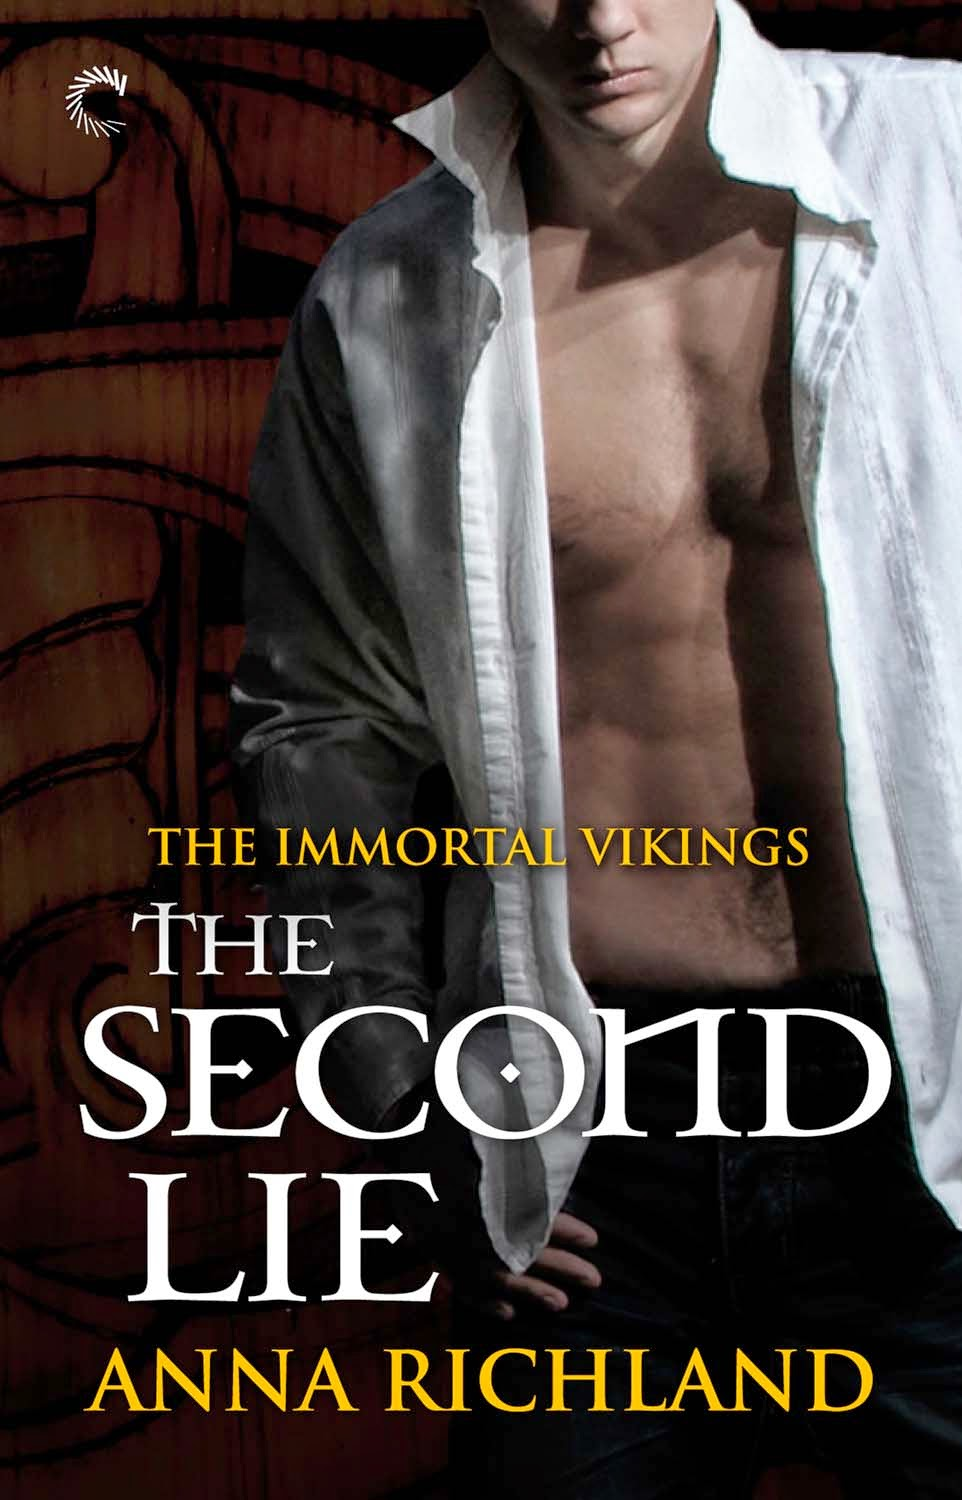 Excerpt from paranormal romantic suspense novel The Second Lie by Anna Richland